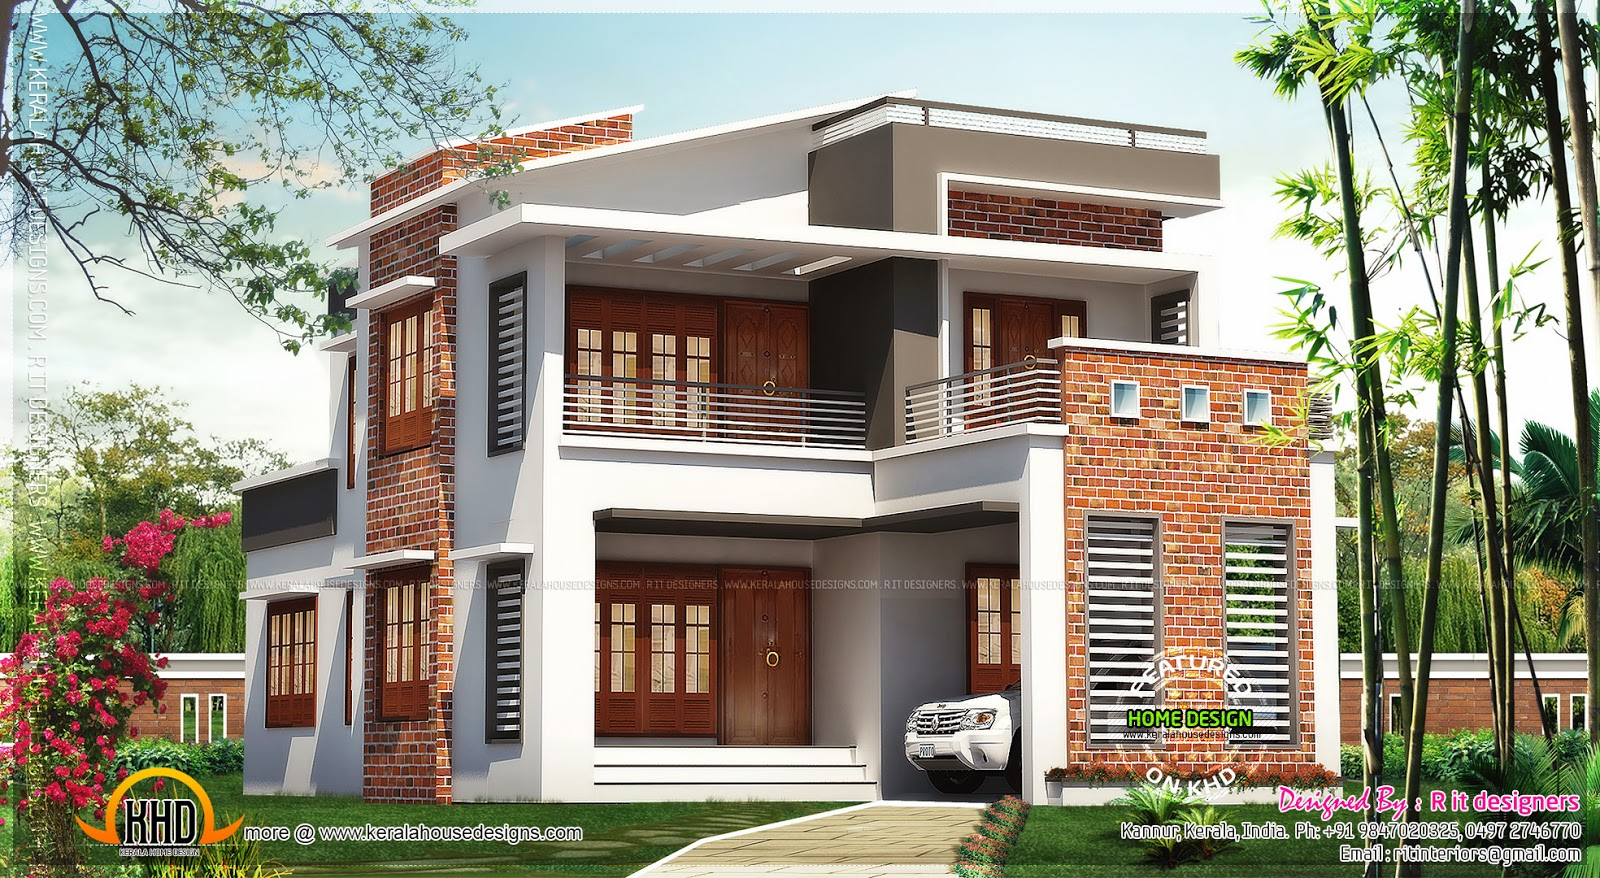 Brick mix house exterior design kerala home design and for Front exterior home designs